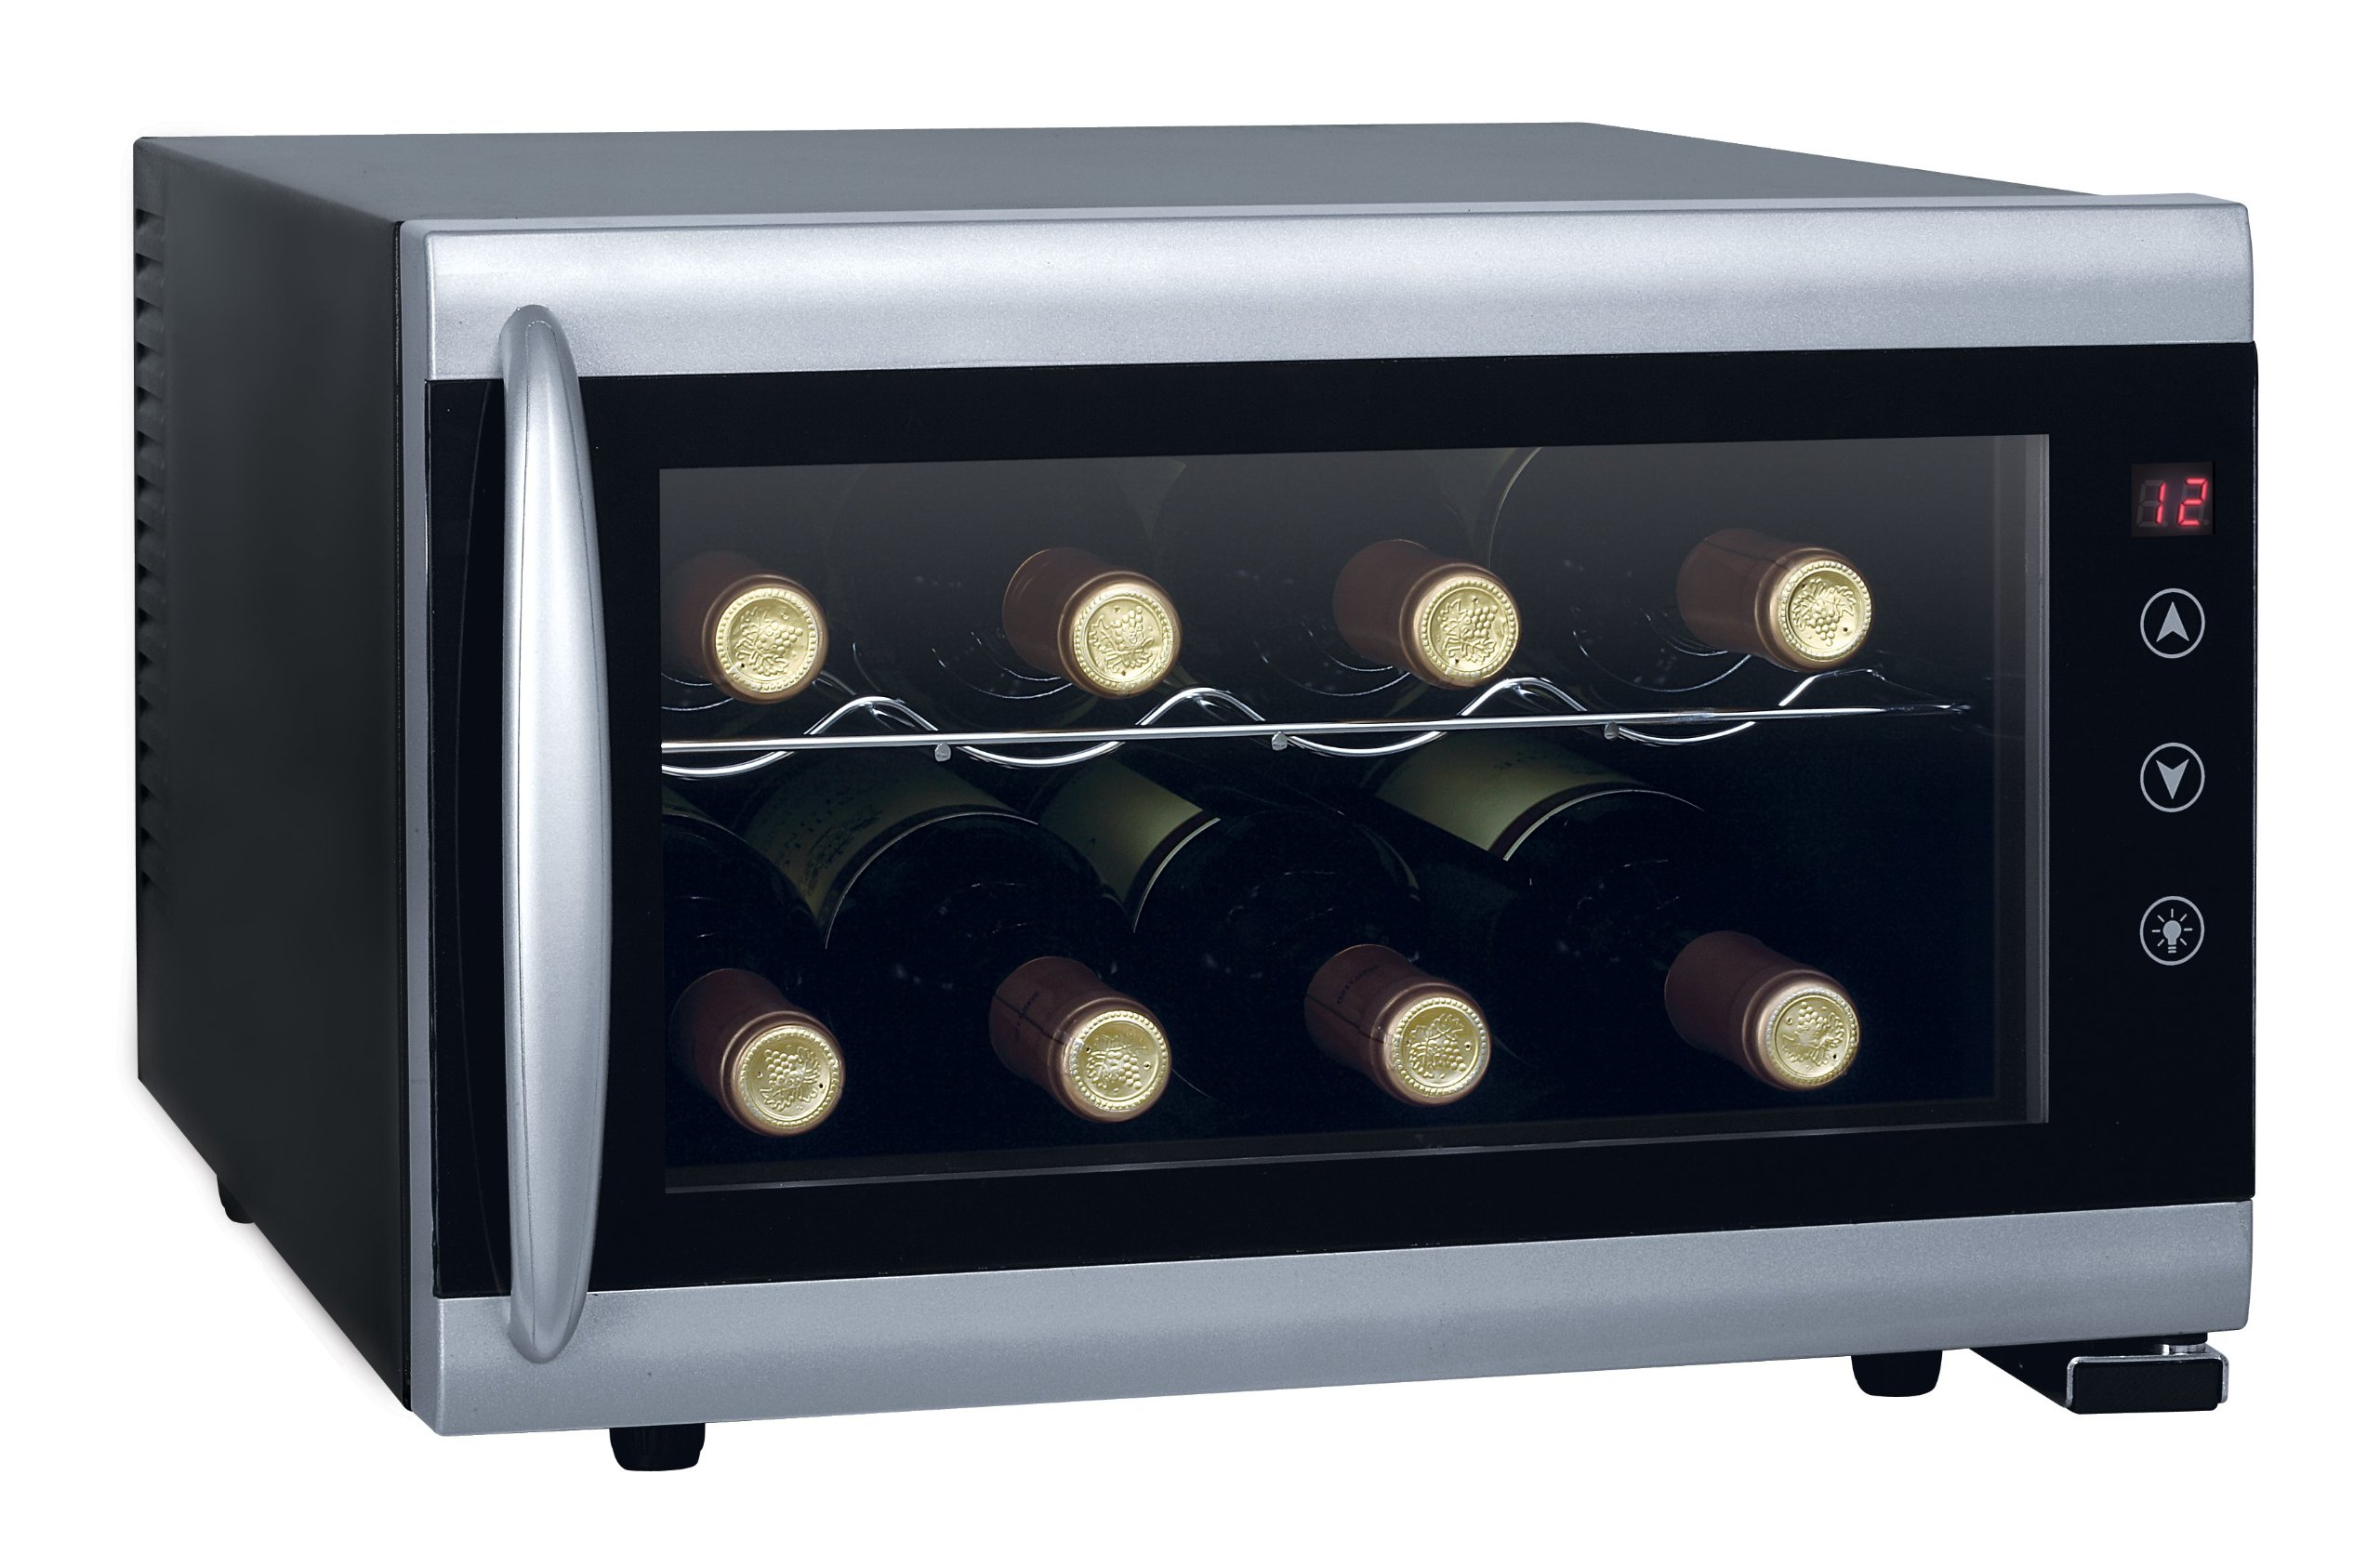 SPT Thermo-Electric Wine Cooler with Heating, 8 Bottles